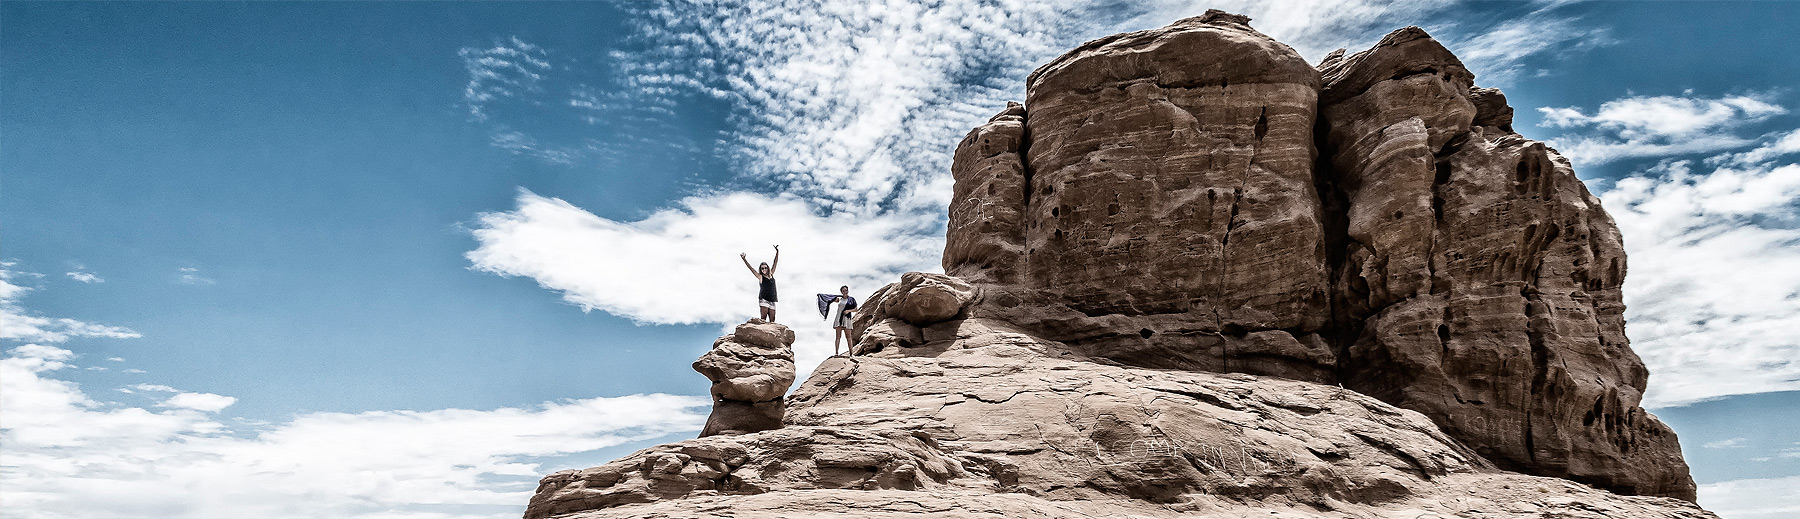 Tourists in Damaraland, Namibia on a bright sunny day